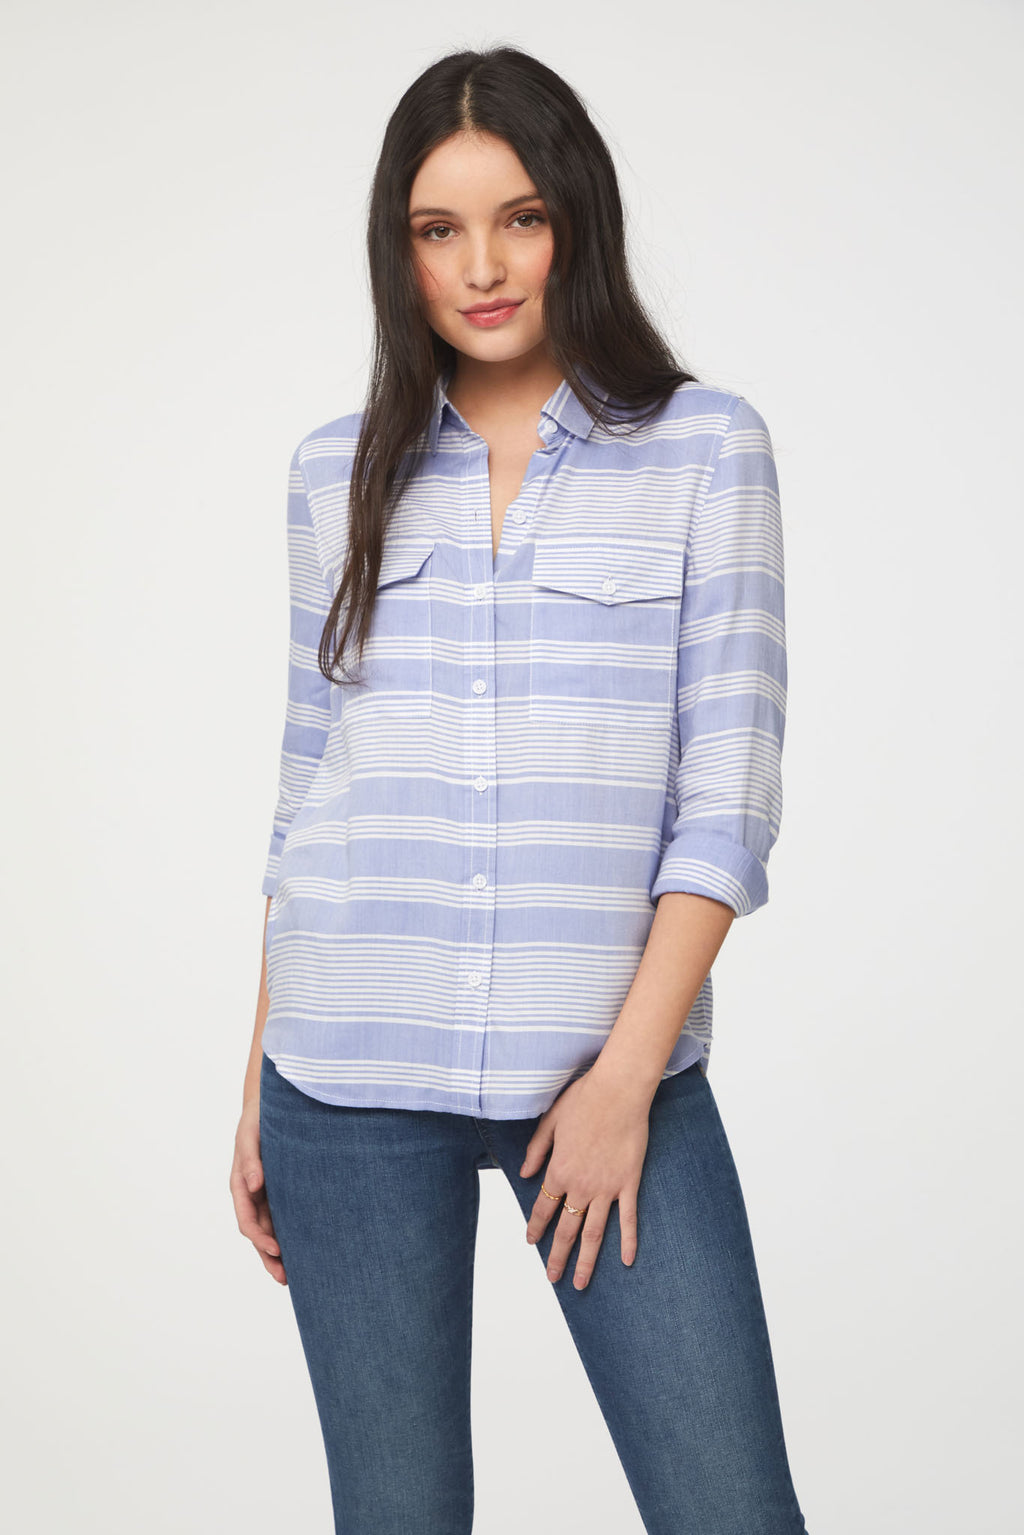 FRANKIE SHIRT - BLISS BLUE